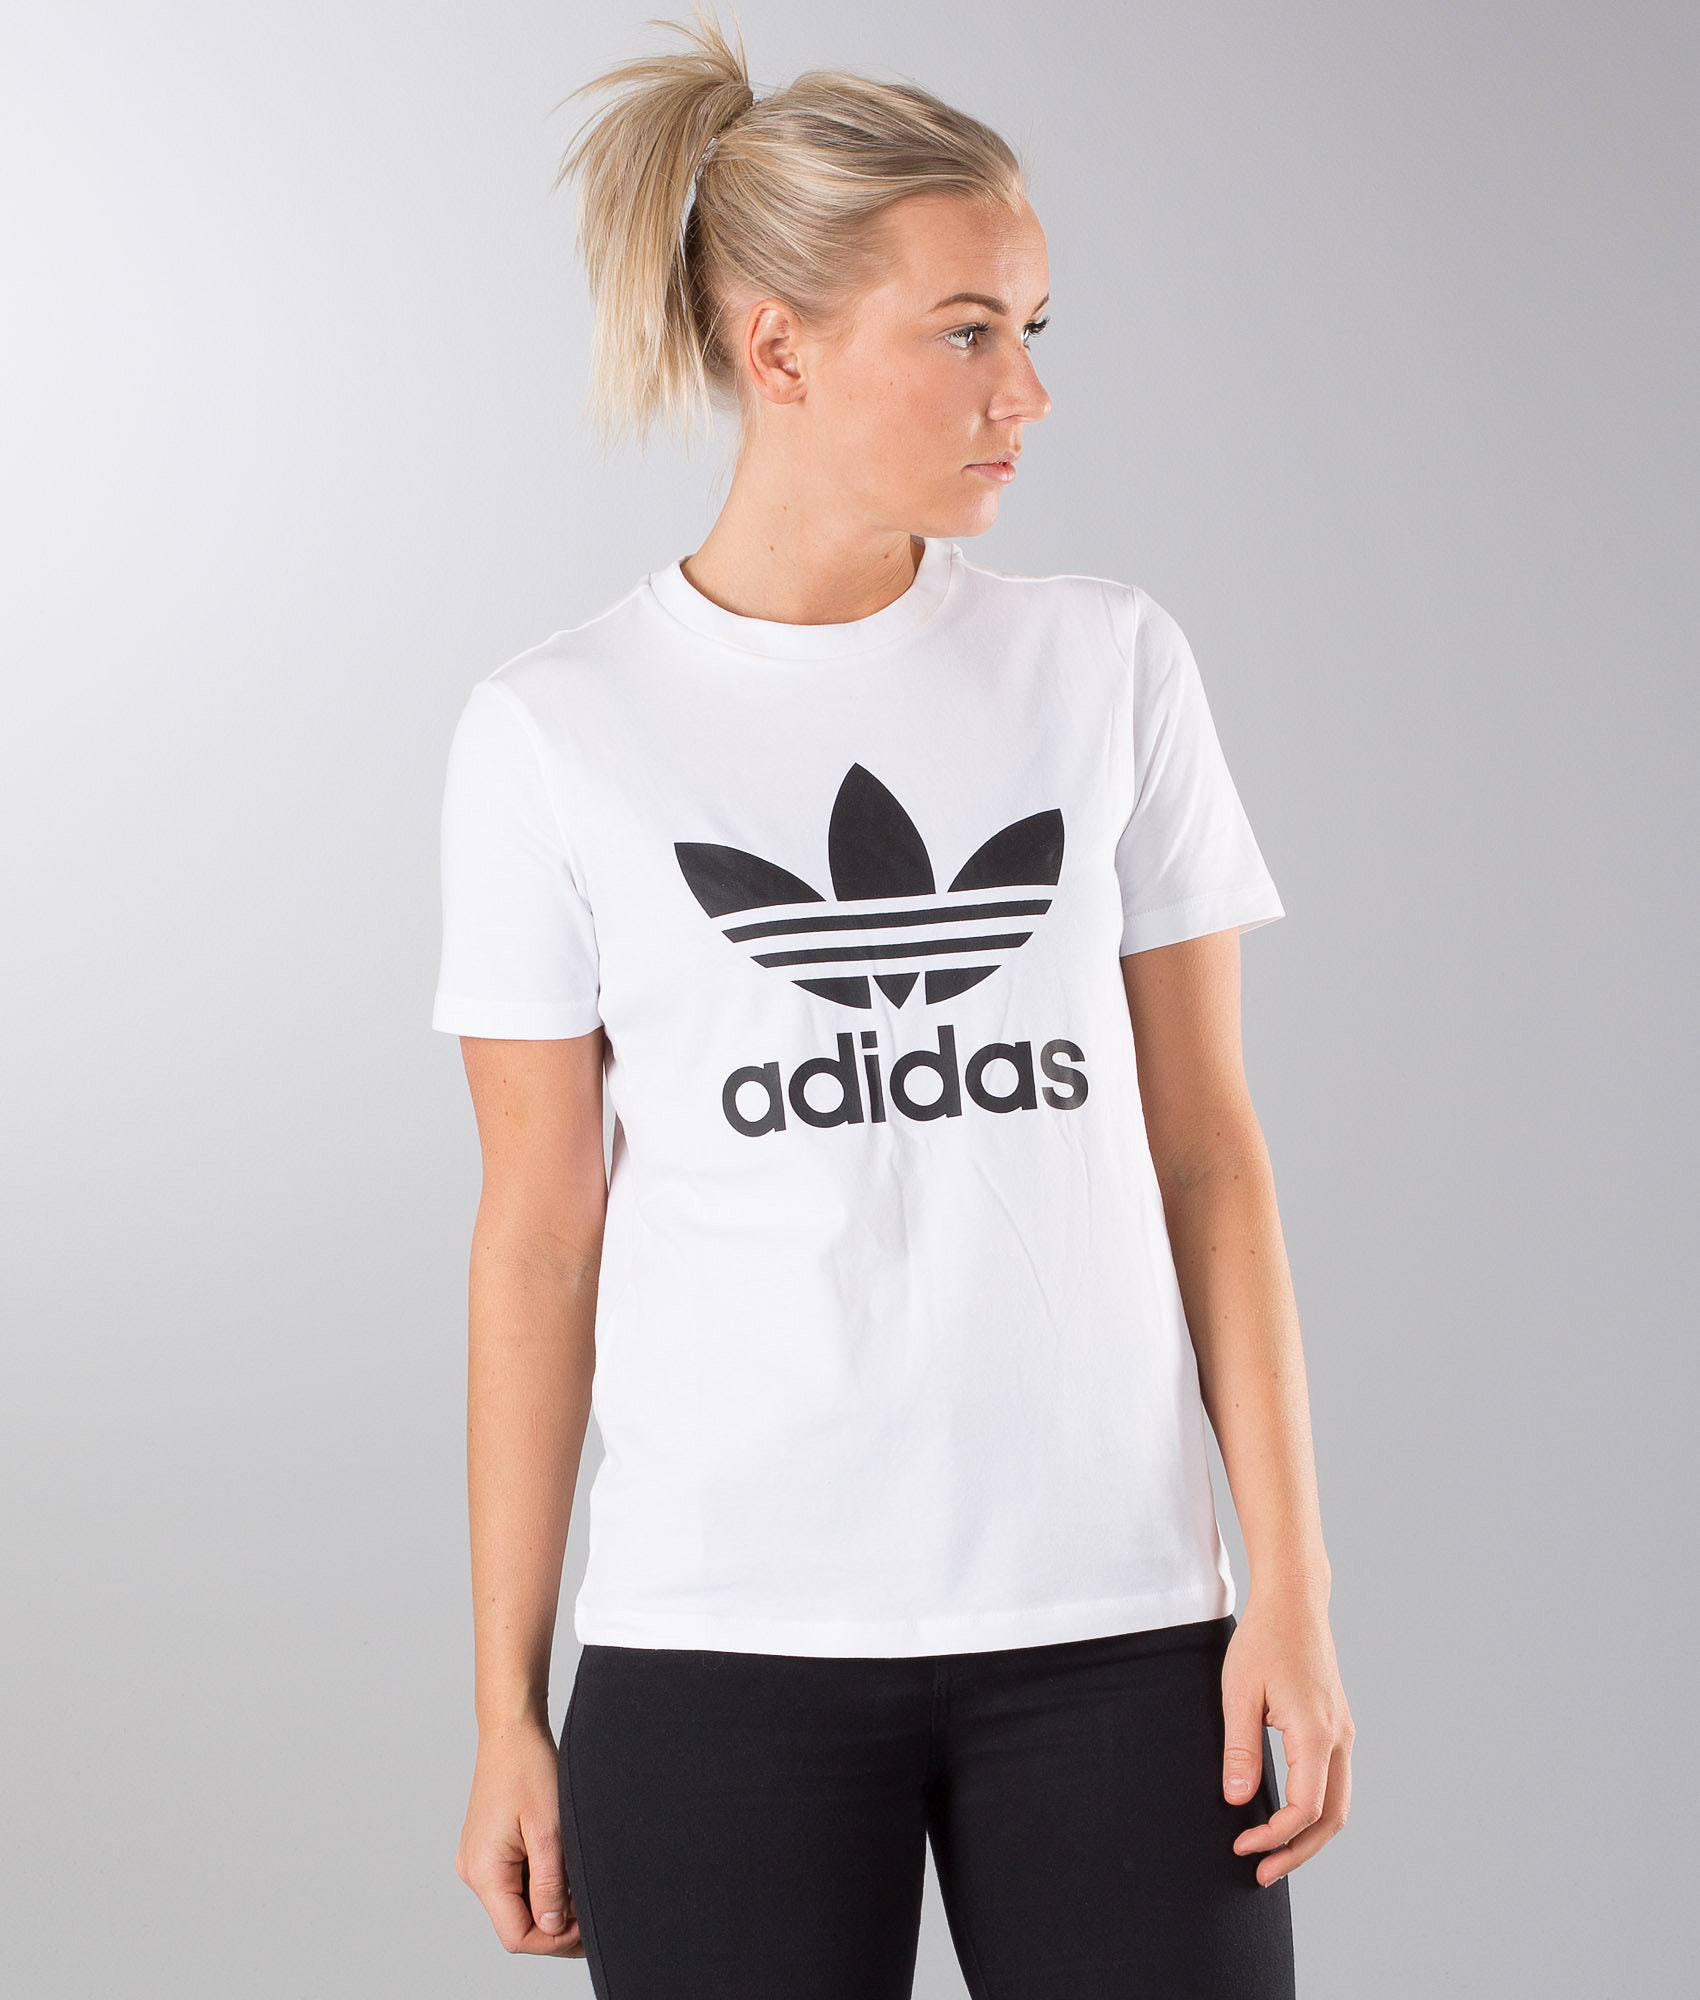 half price low price sale new product Adidas Originals Trefoil T-shirt White/Black